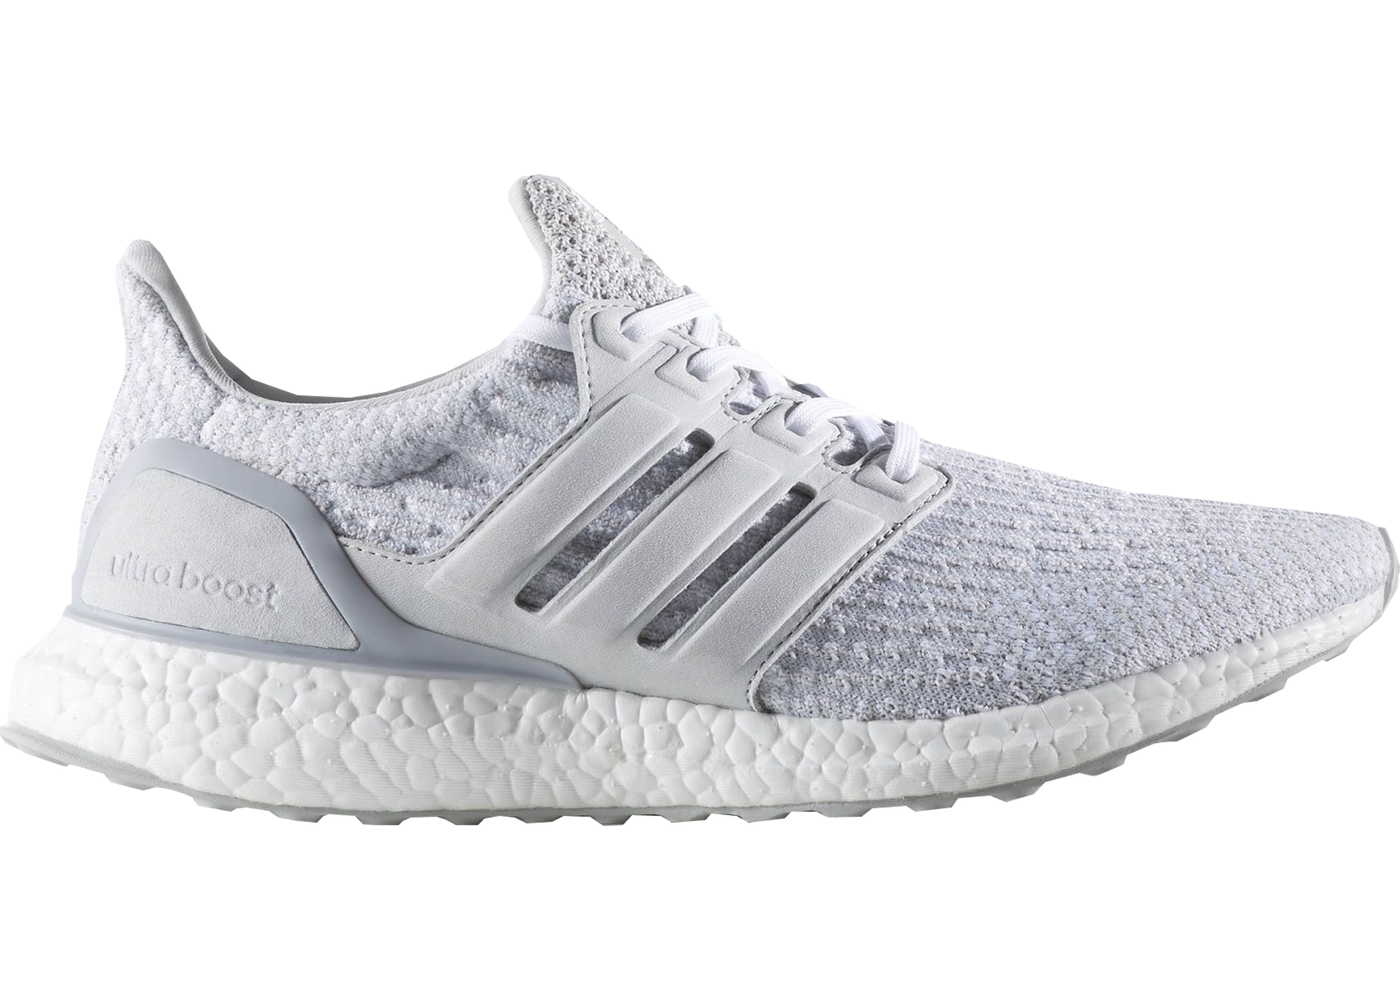 These adidas Ultra Boost 3.0 Colorways are Releasing on January 1st